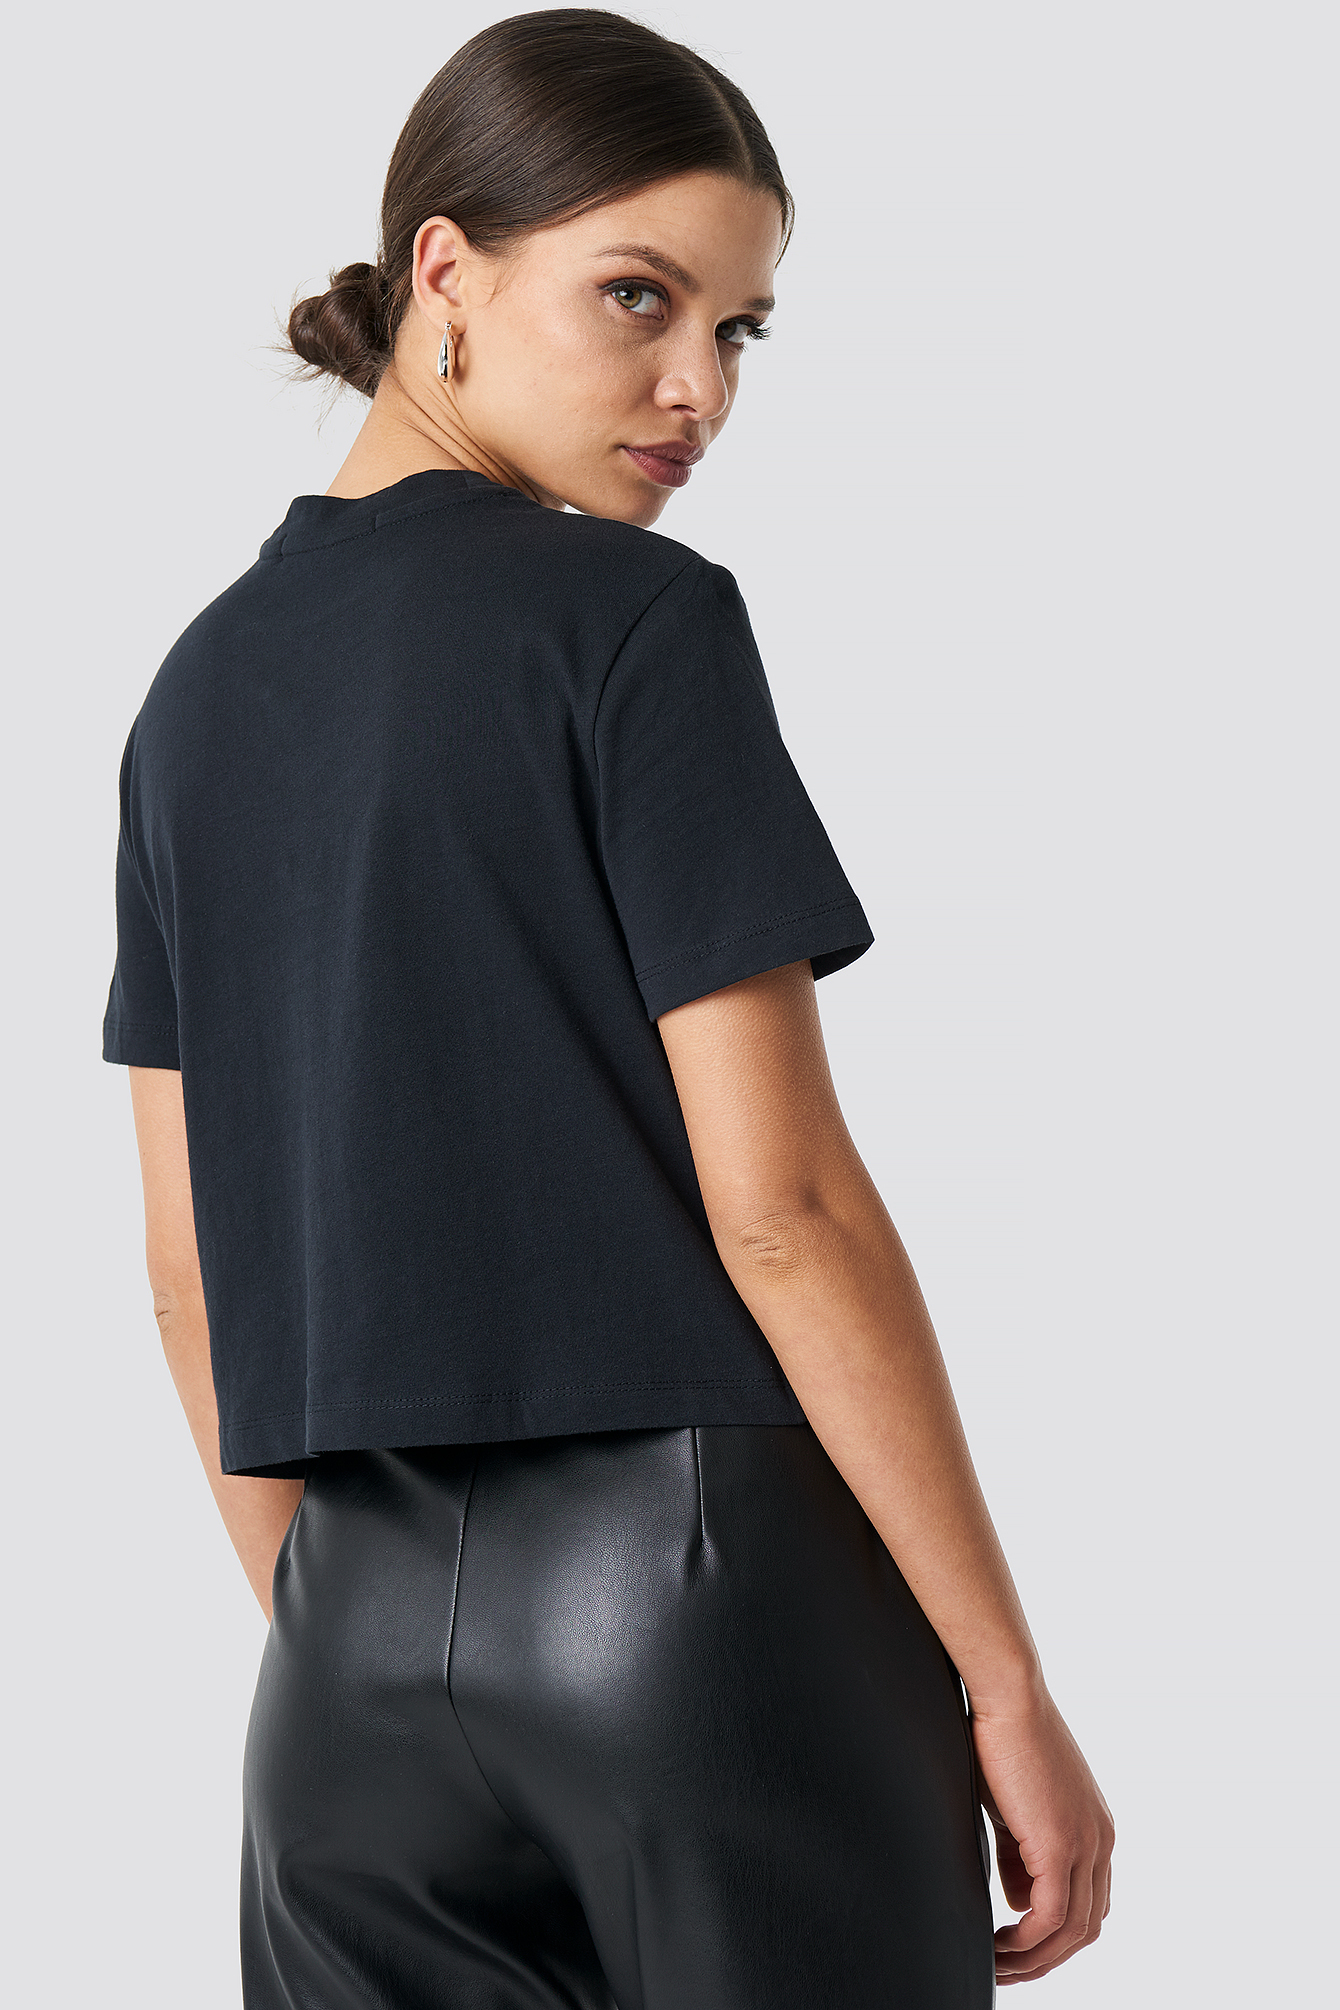 CK Black Shrunken Institutional Crop Tee